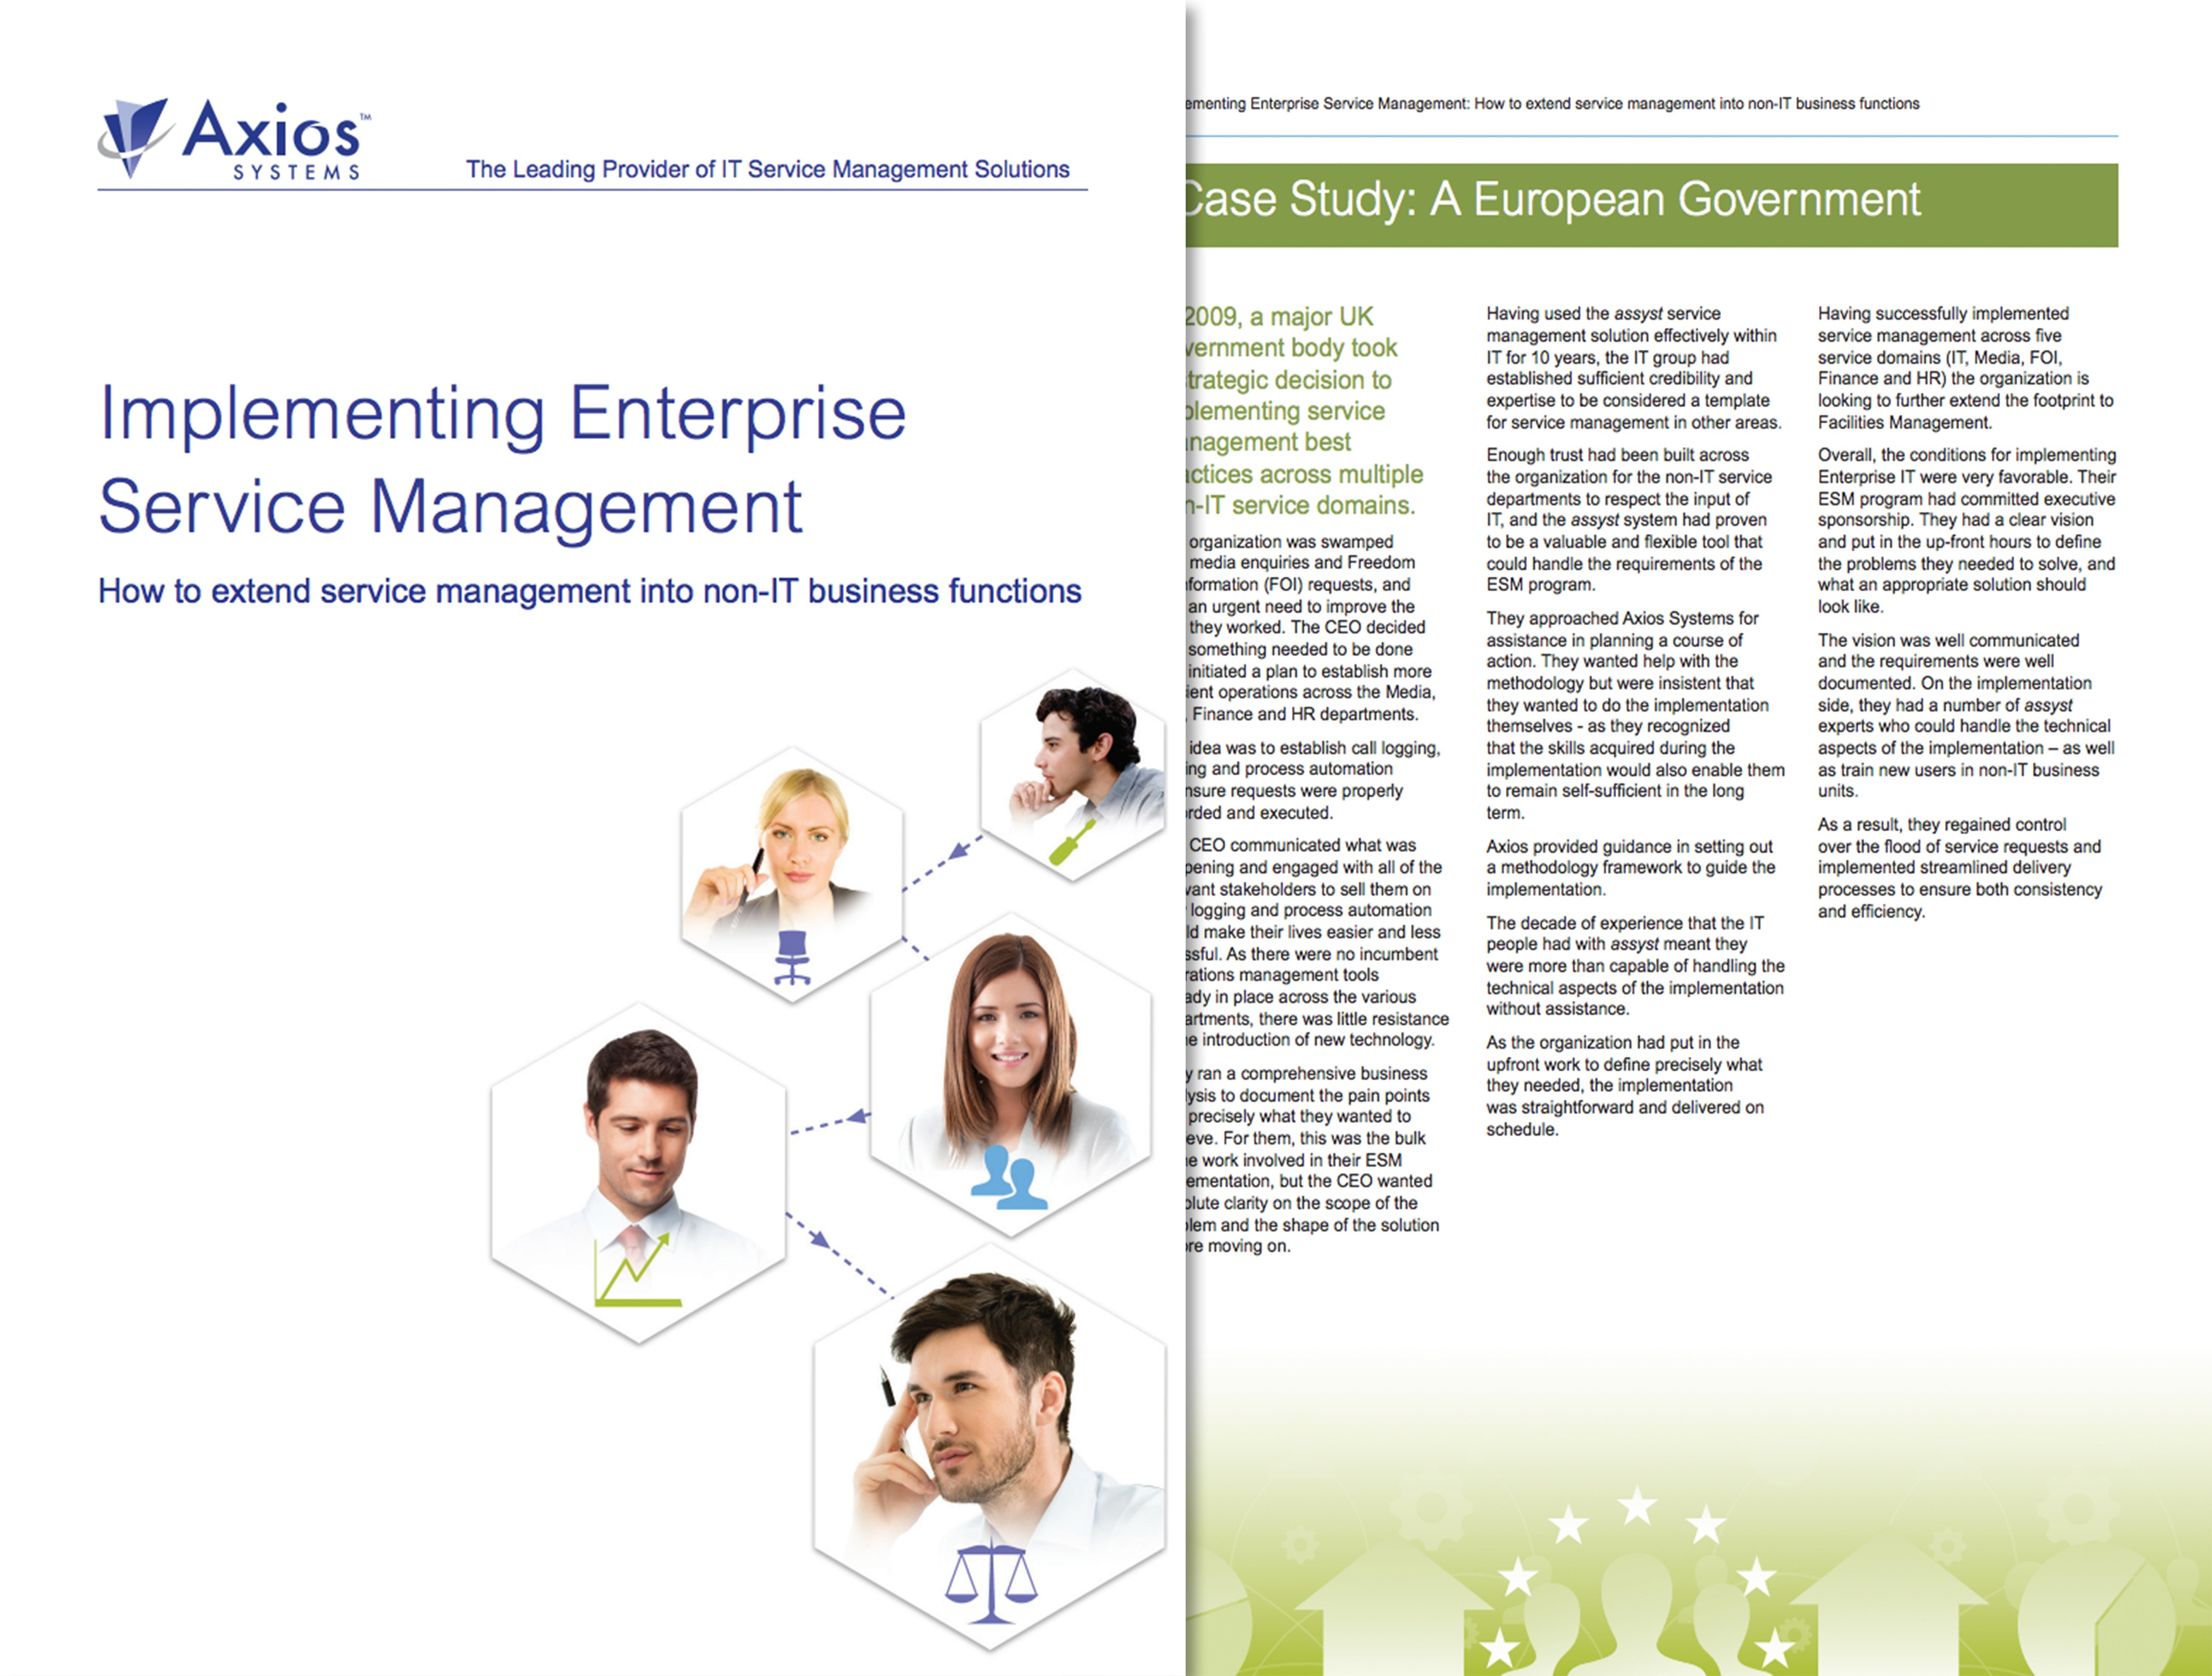 Implementierung des Enterprise-Service-Managements